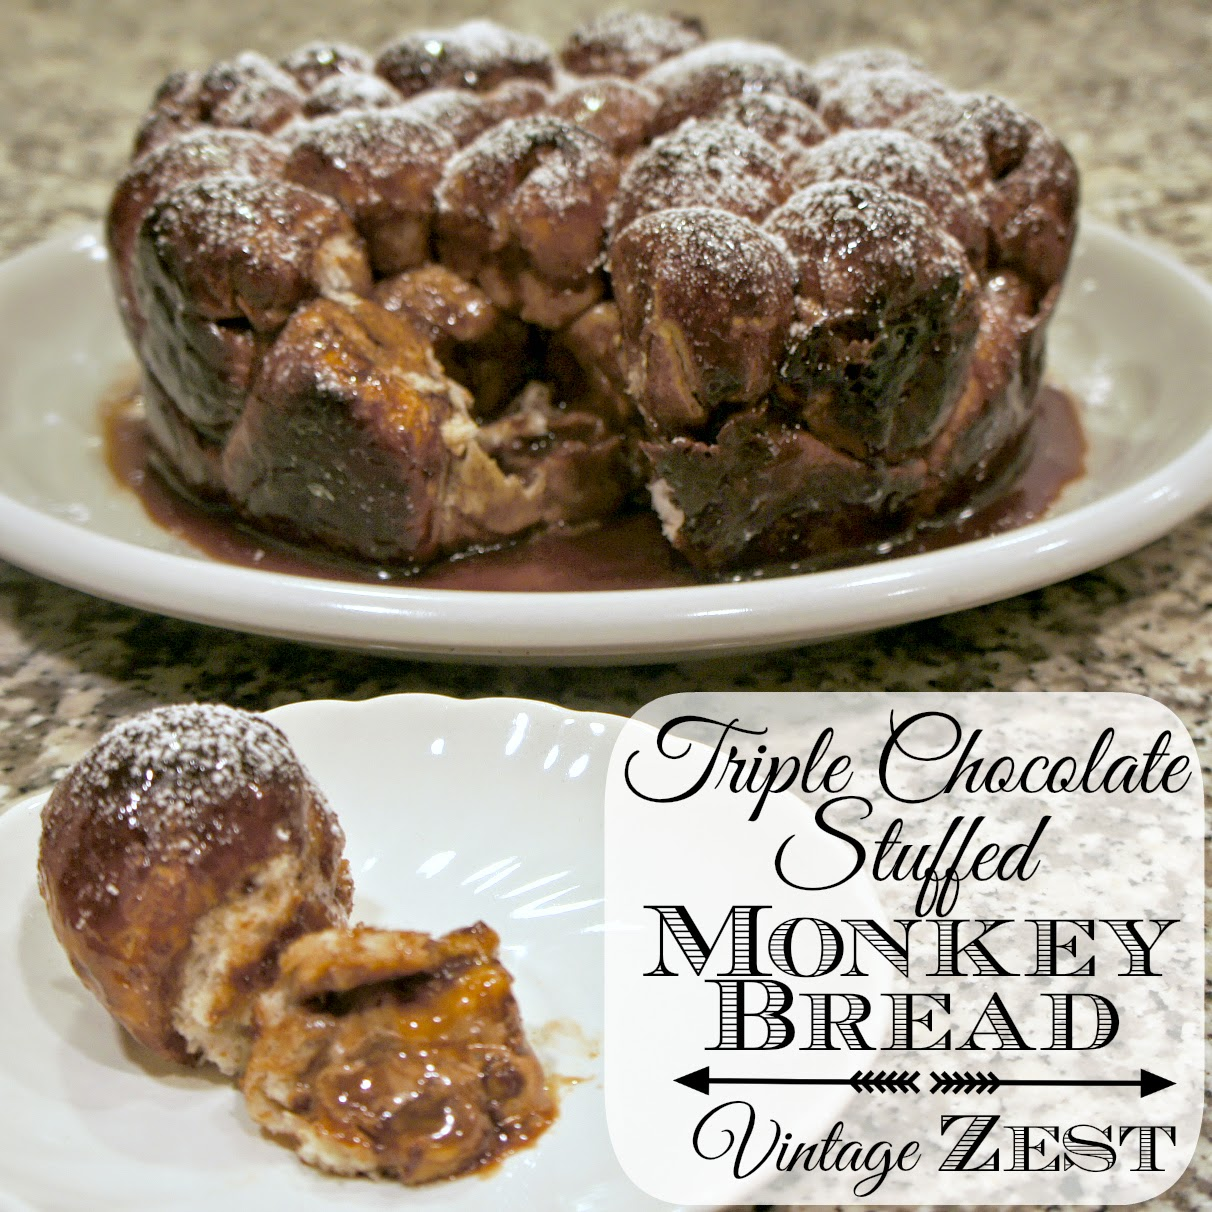 Triple Chocolate Stuffed Monkey Bread with Milky Way Bites #shop #gamedaybites